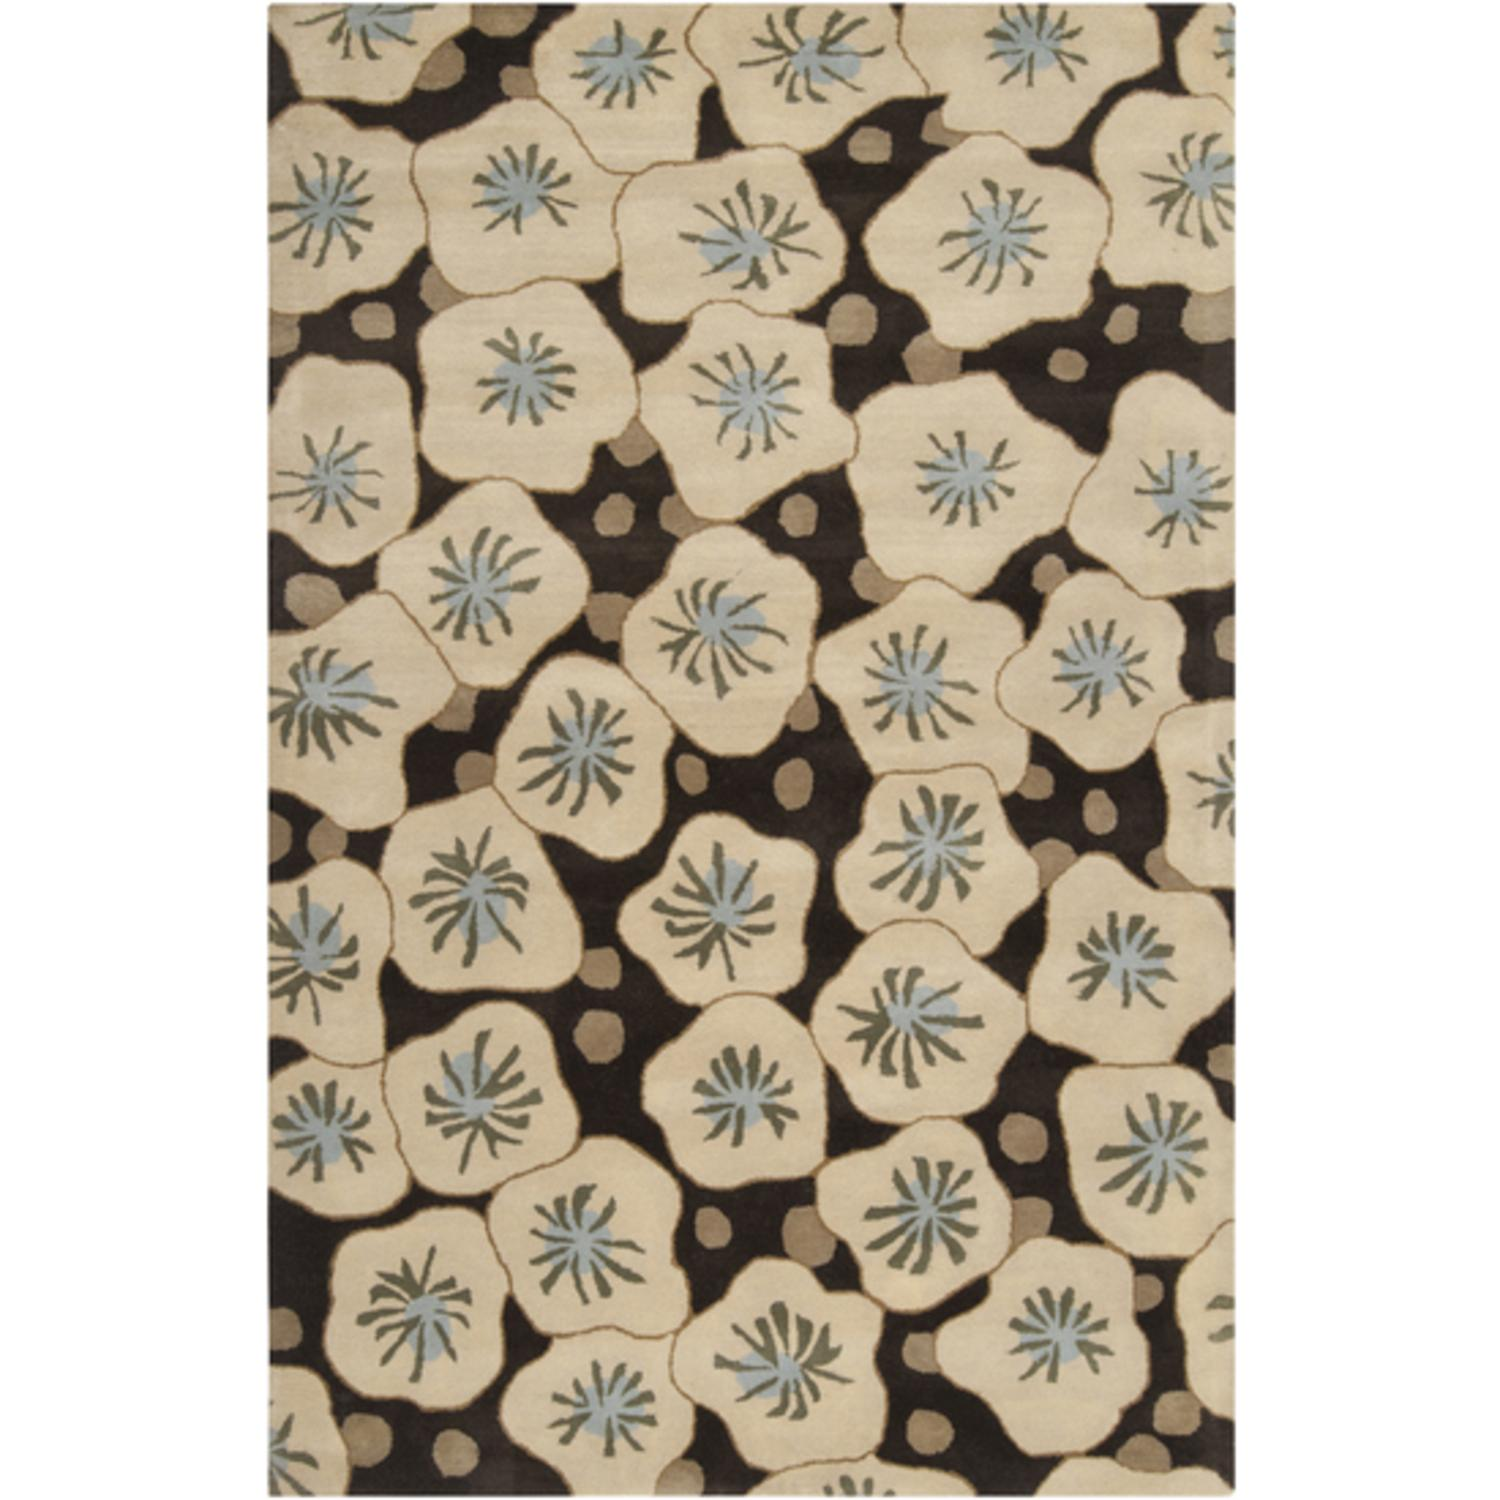 9' x 13' Sweet Meadow Pine Green and Safari Tan Wool Area Throw Rug